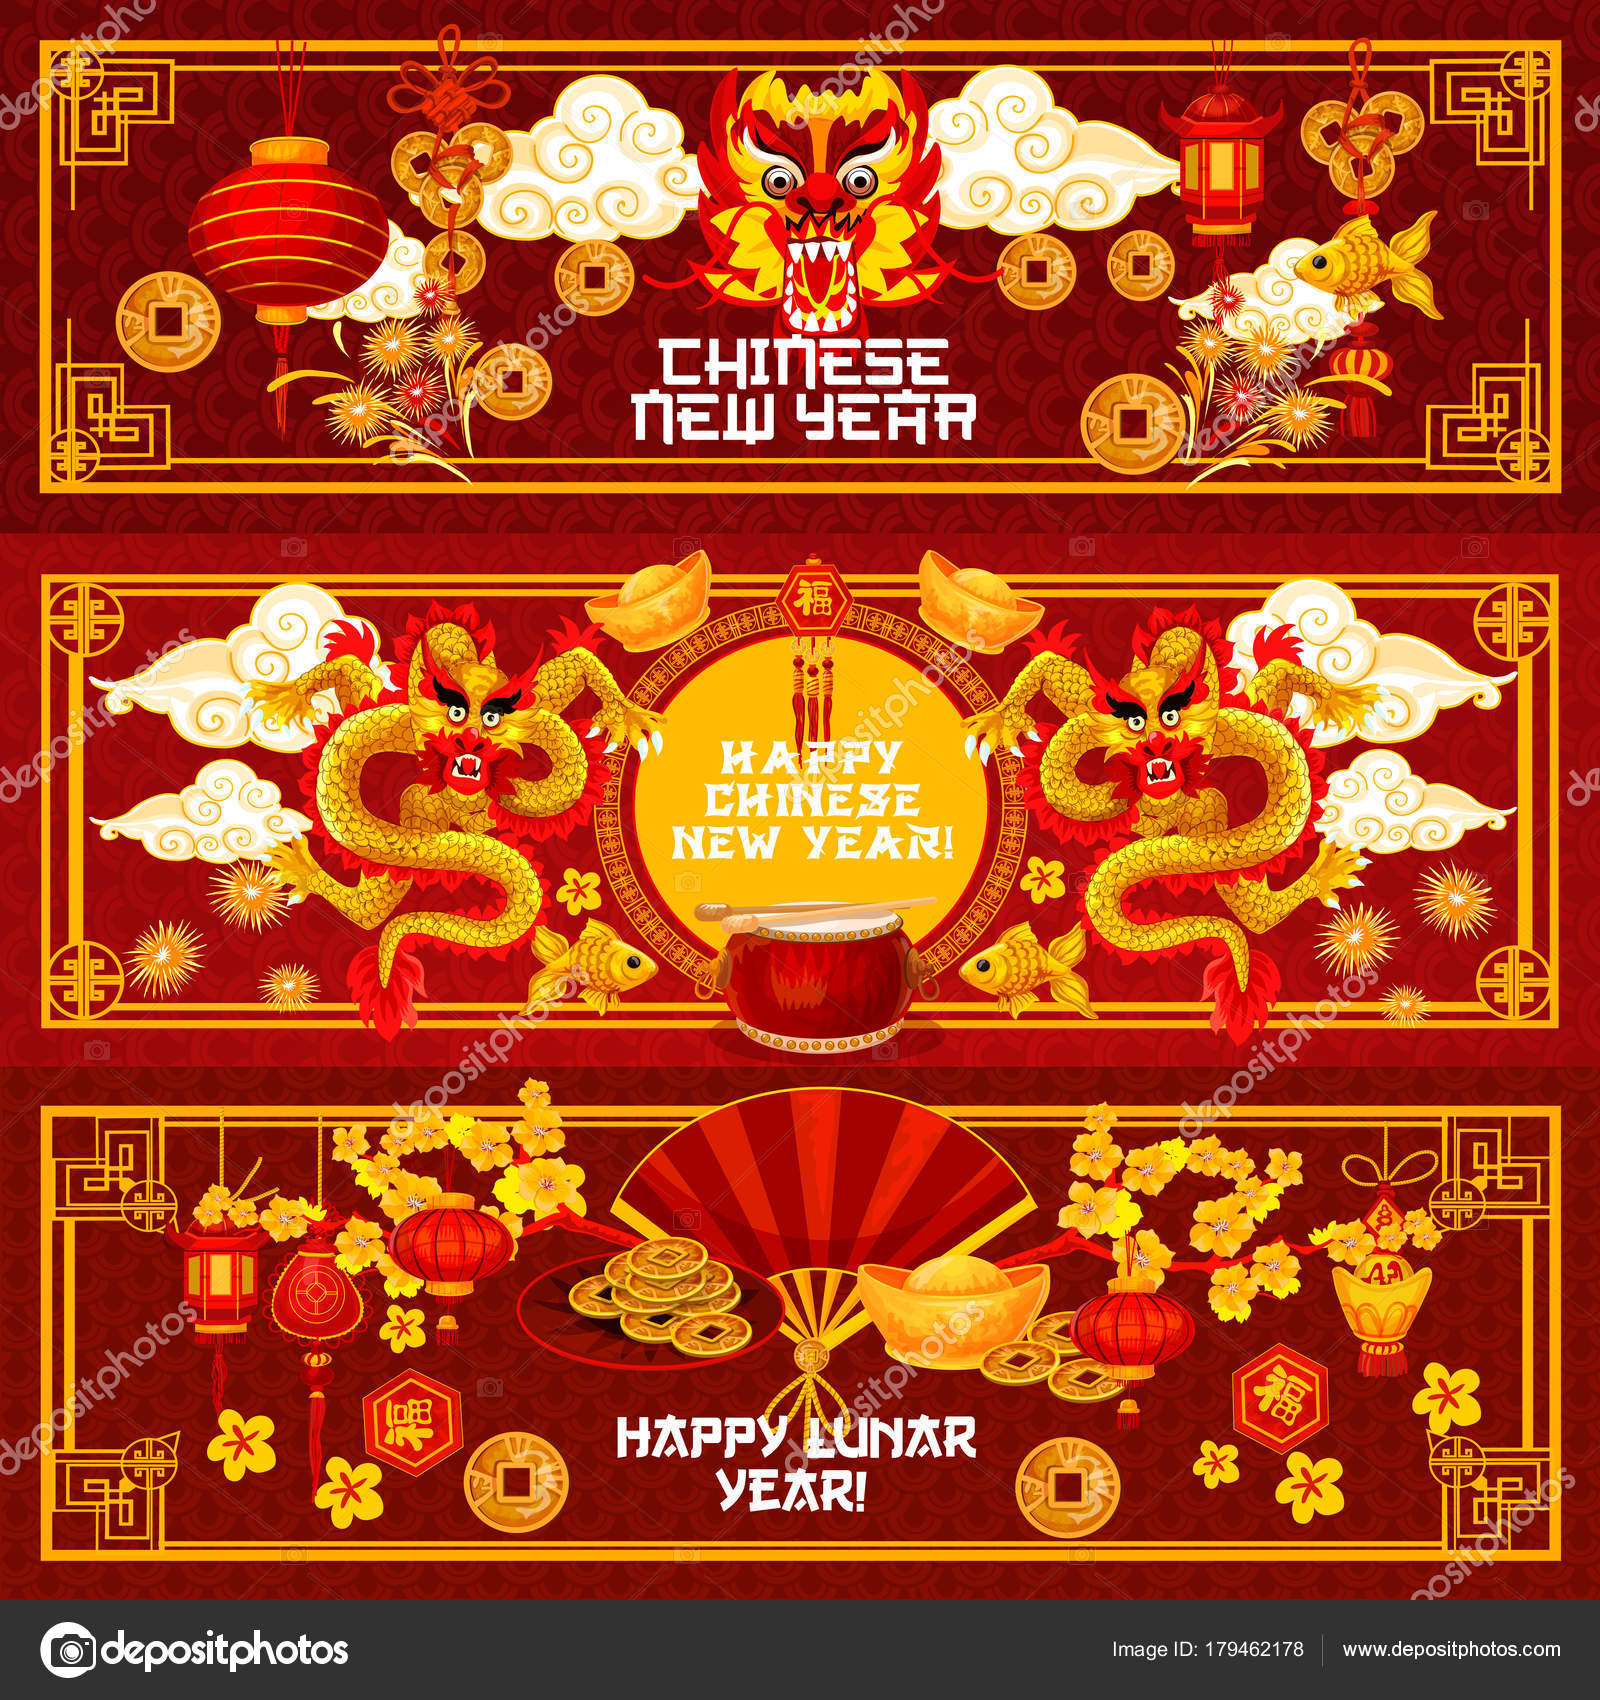 Chinese New Year Ornamente Vektor Gruß Banner — Stockvektor ...